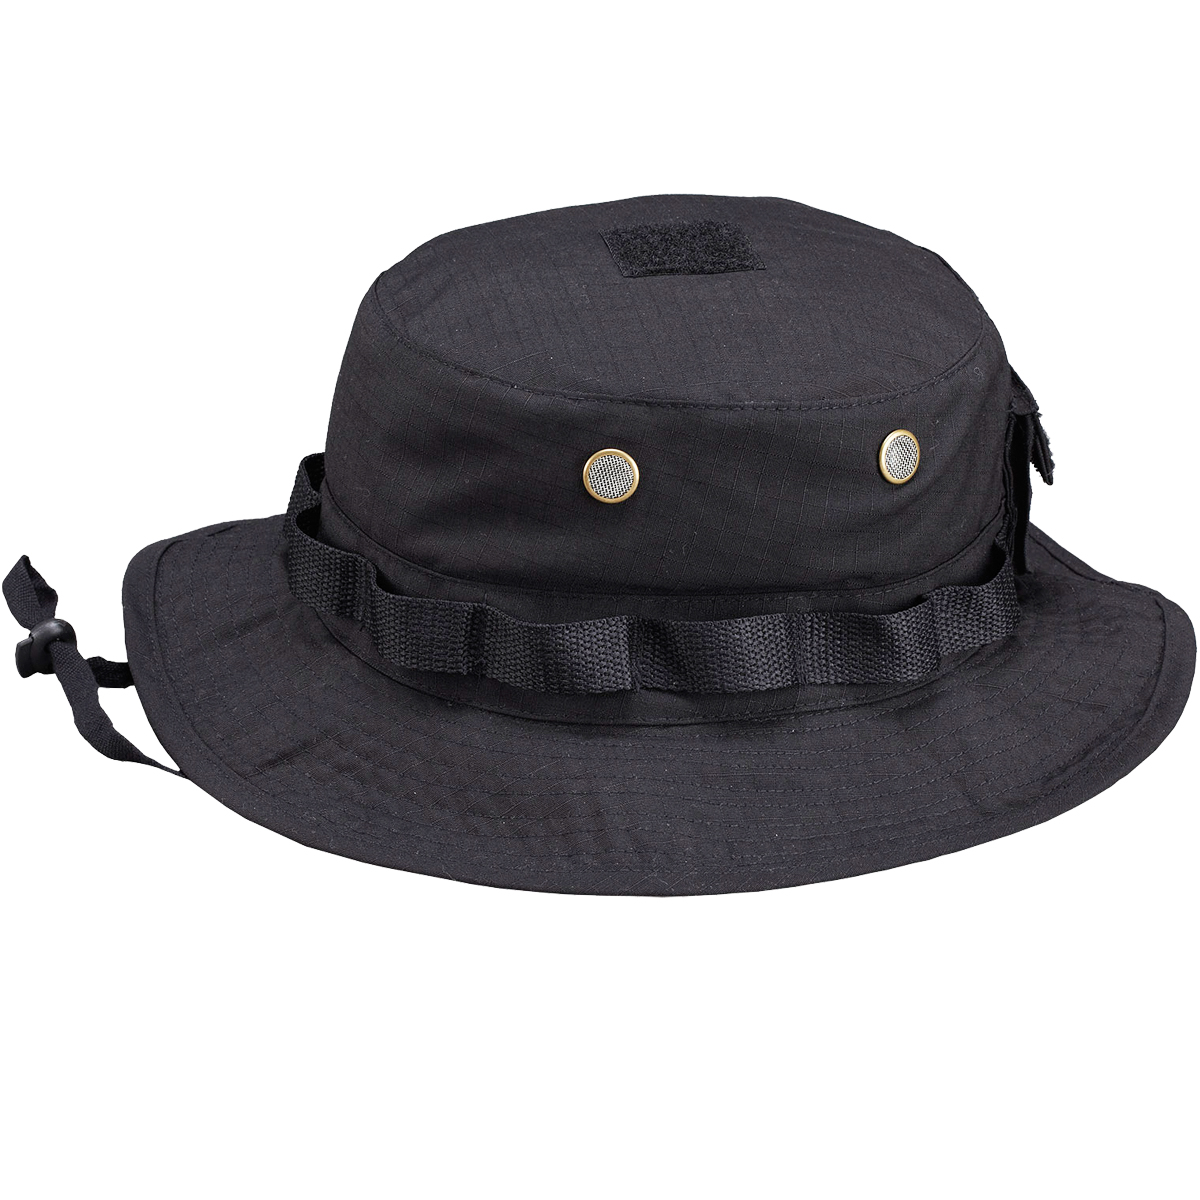 Details about Pentagon Jungle Hat Boonie Army Security Tactical Police  Ripstop Headwear Black 28b0e9651c9